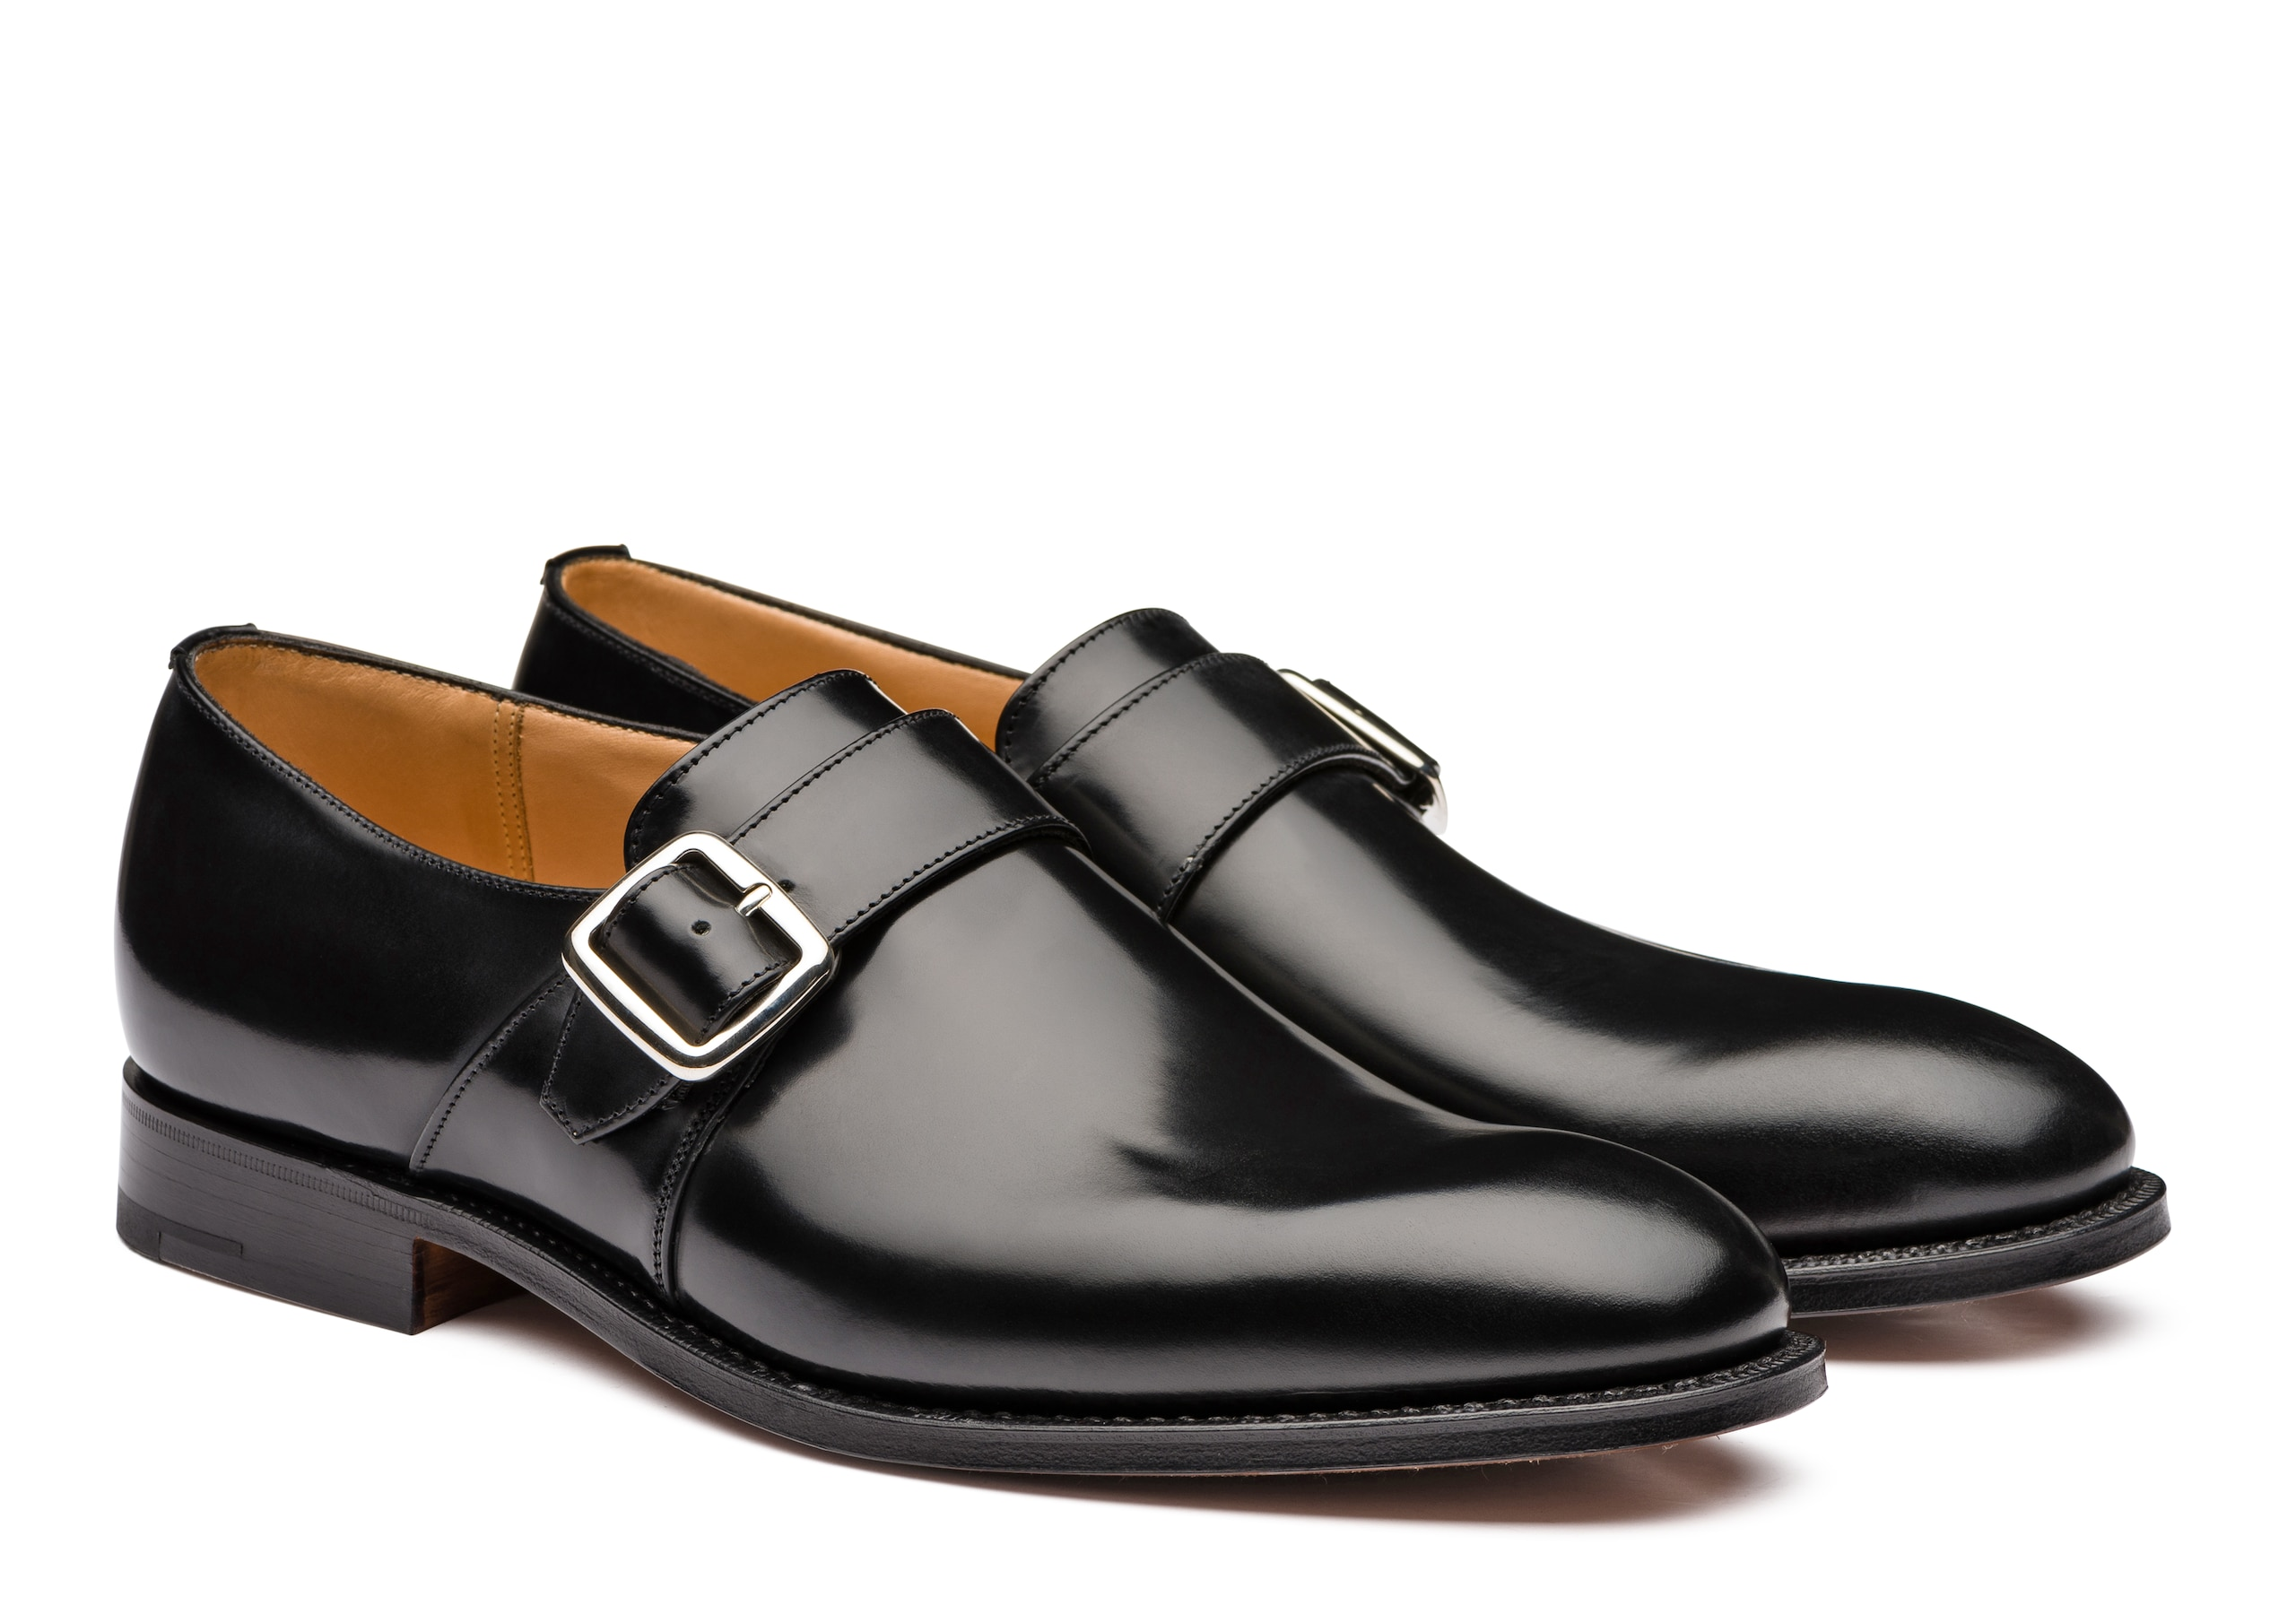 Westbury Church's Polished Binder Monk Strap Black